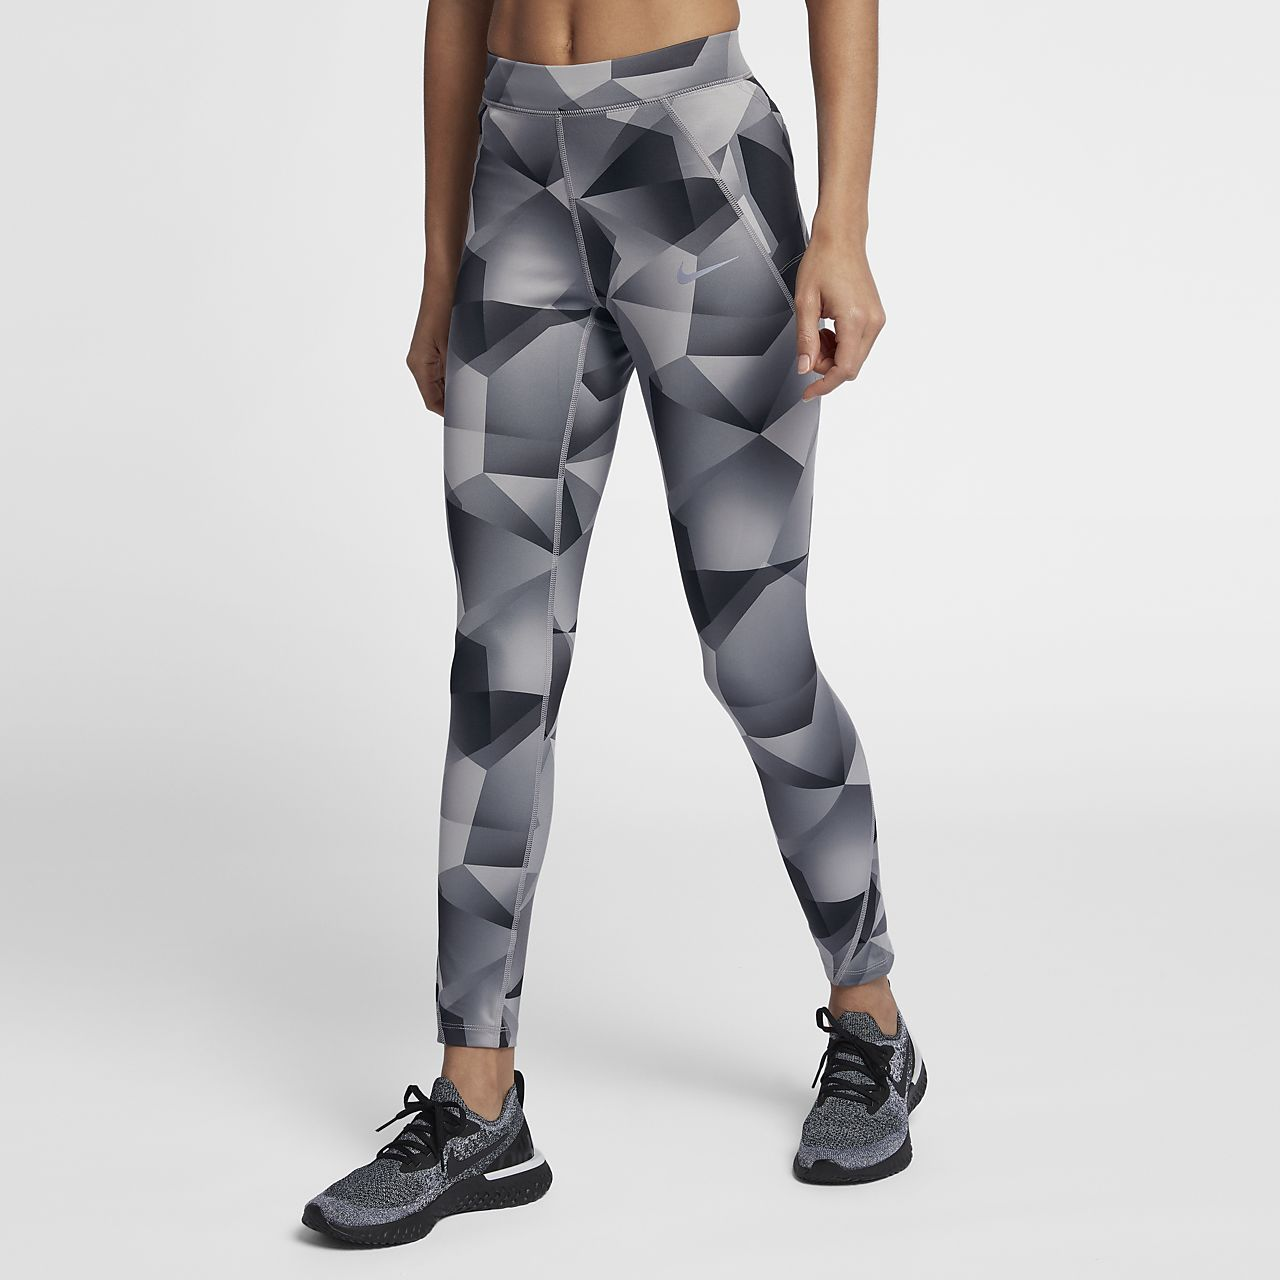 Nike Speed Women's 7/8 Mid-Rise Running Tights